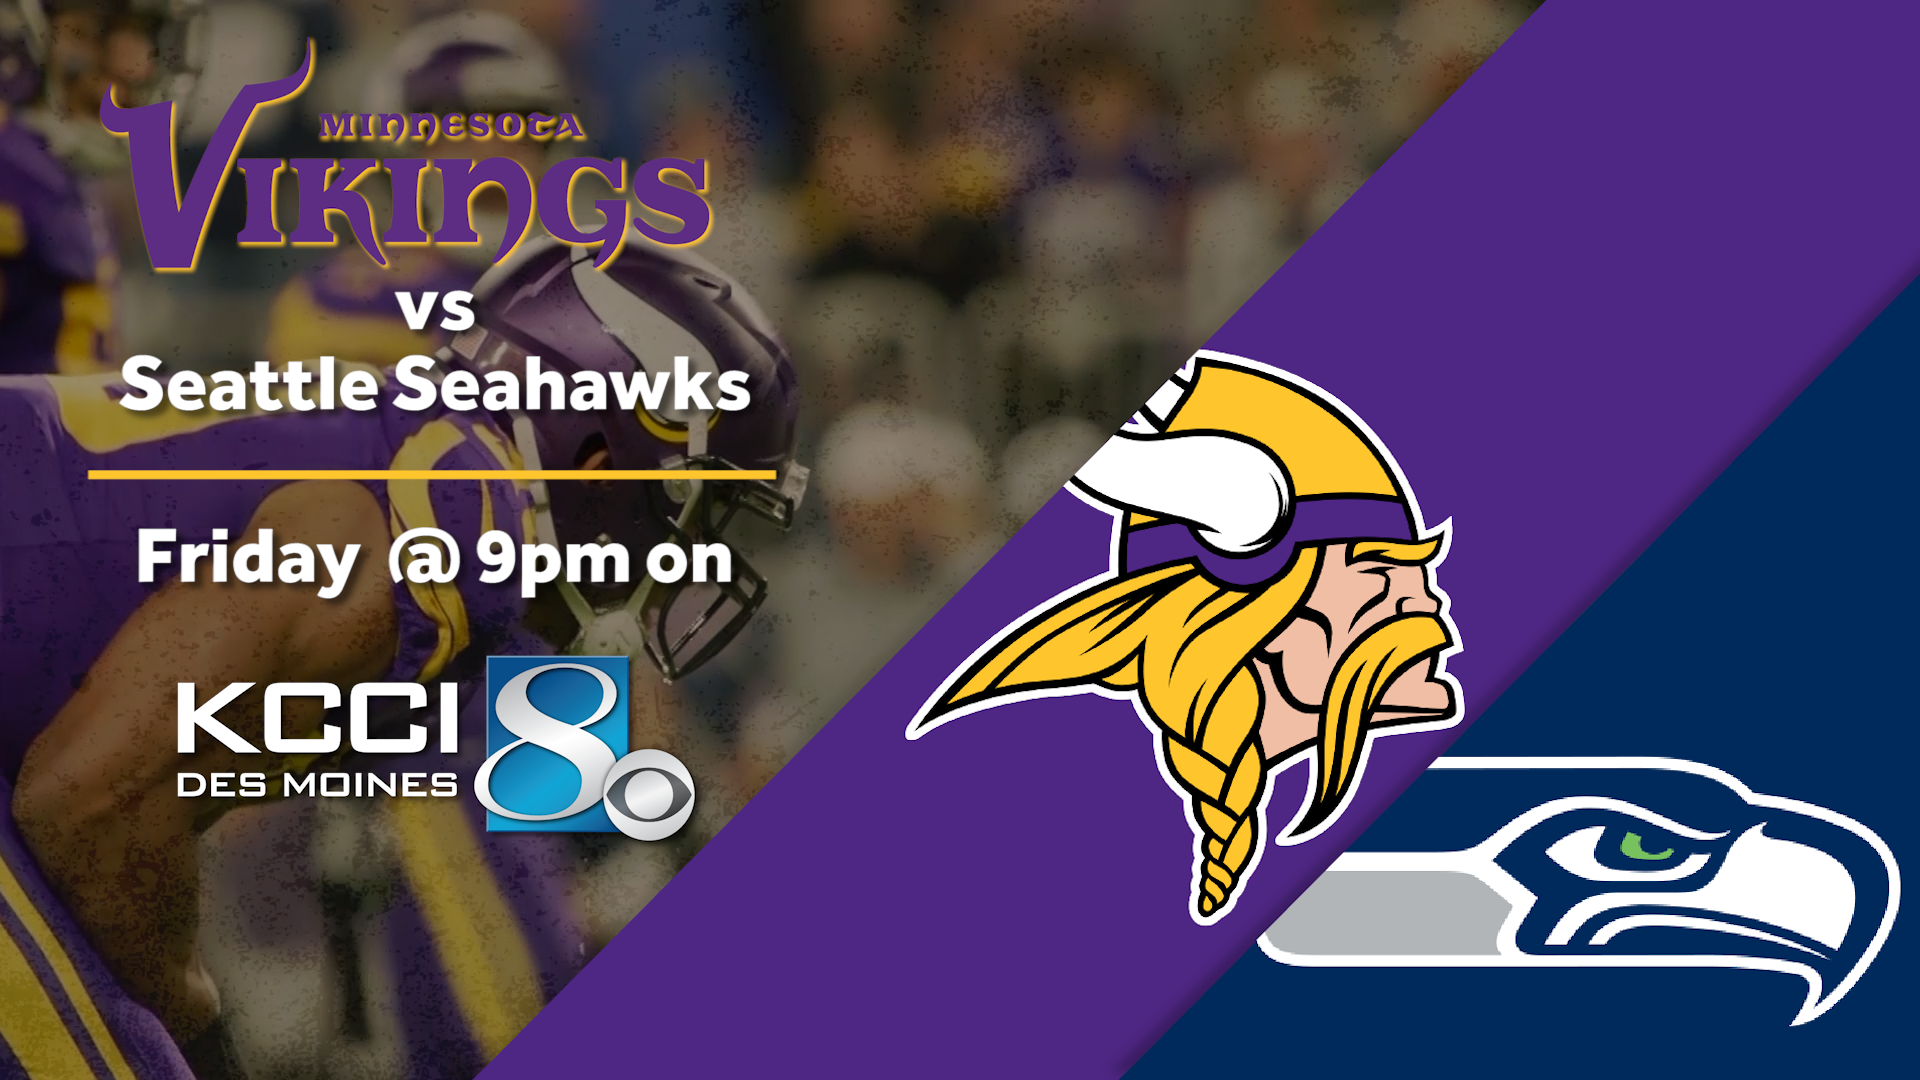 What to Watch For Tonight: Vikings vs. Seahawks